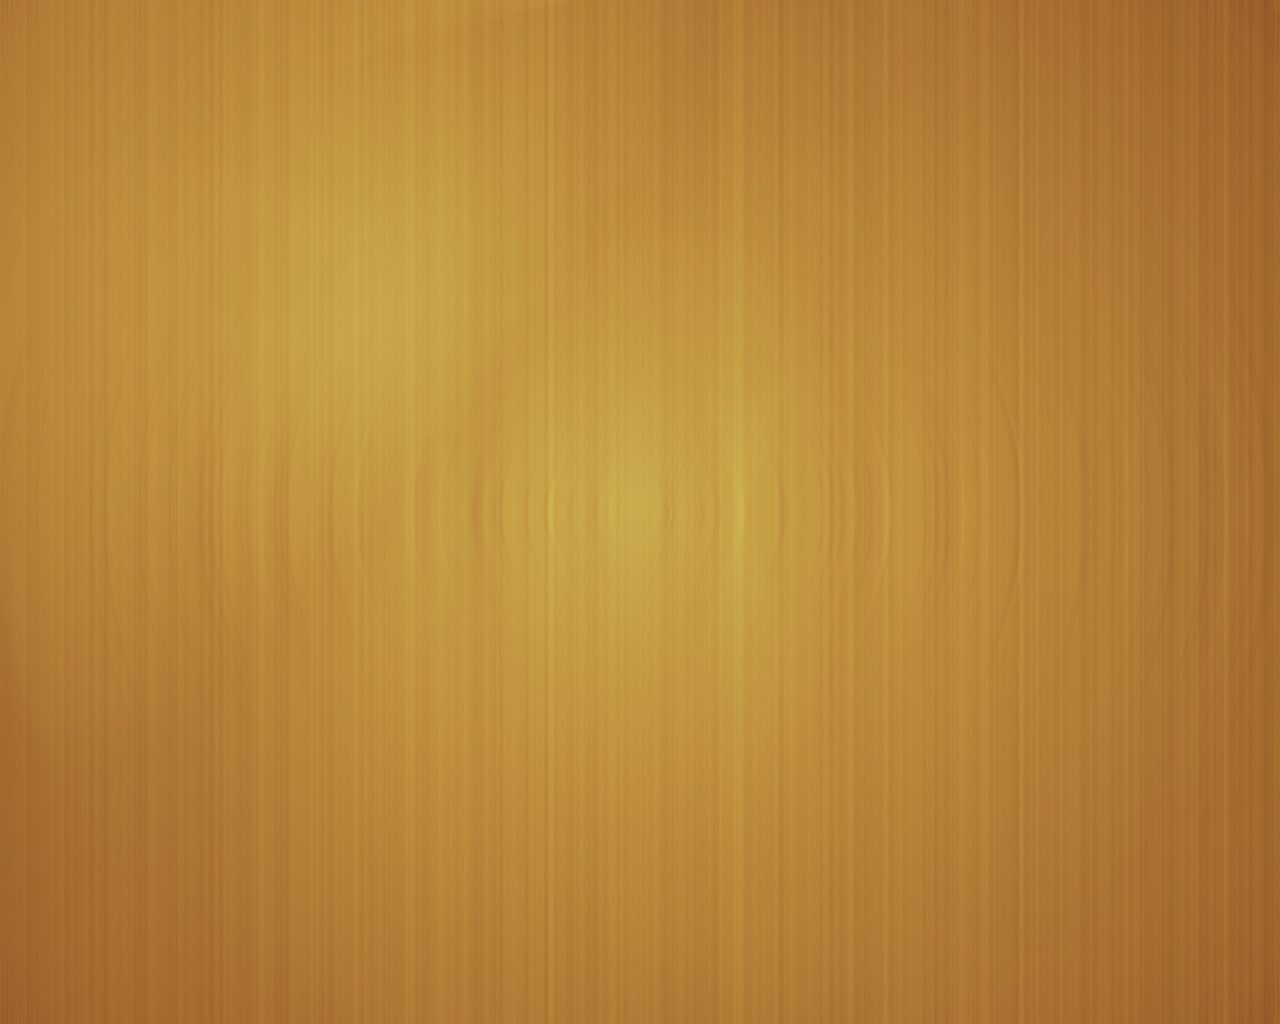 wallpaper stripes orange2 by 10r